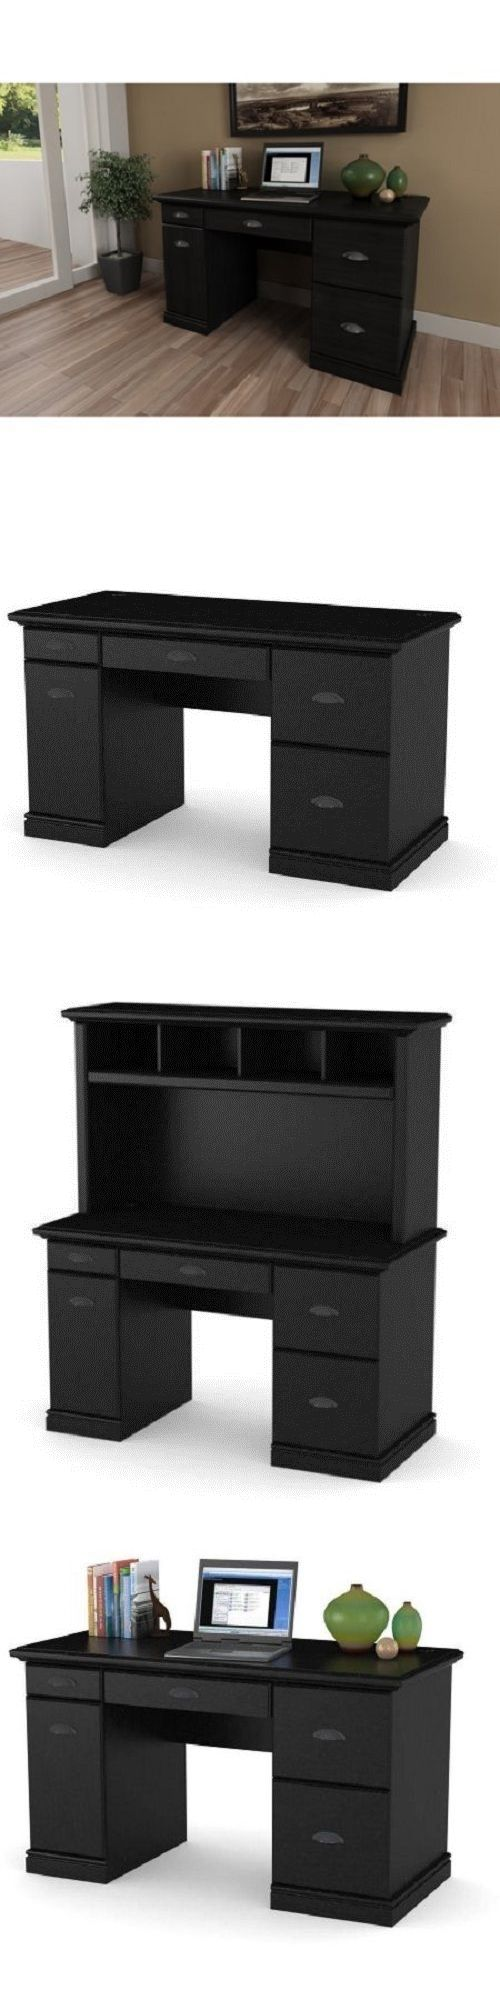 Office Furniture: Office Computer Desk Computer Workstation Home Furniture Wood Table BUY IT NOW ONLY: $152.22